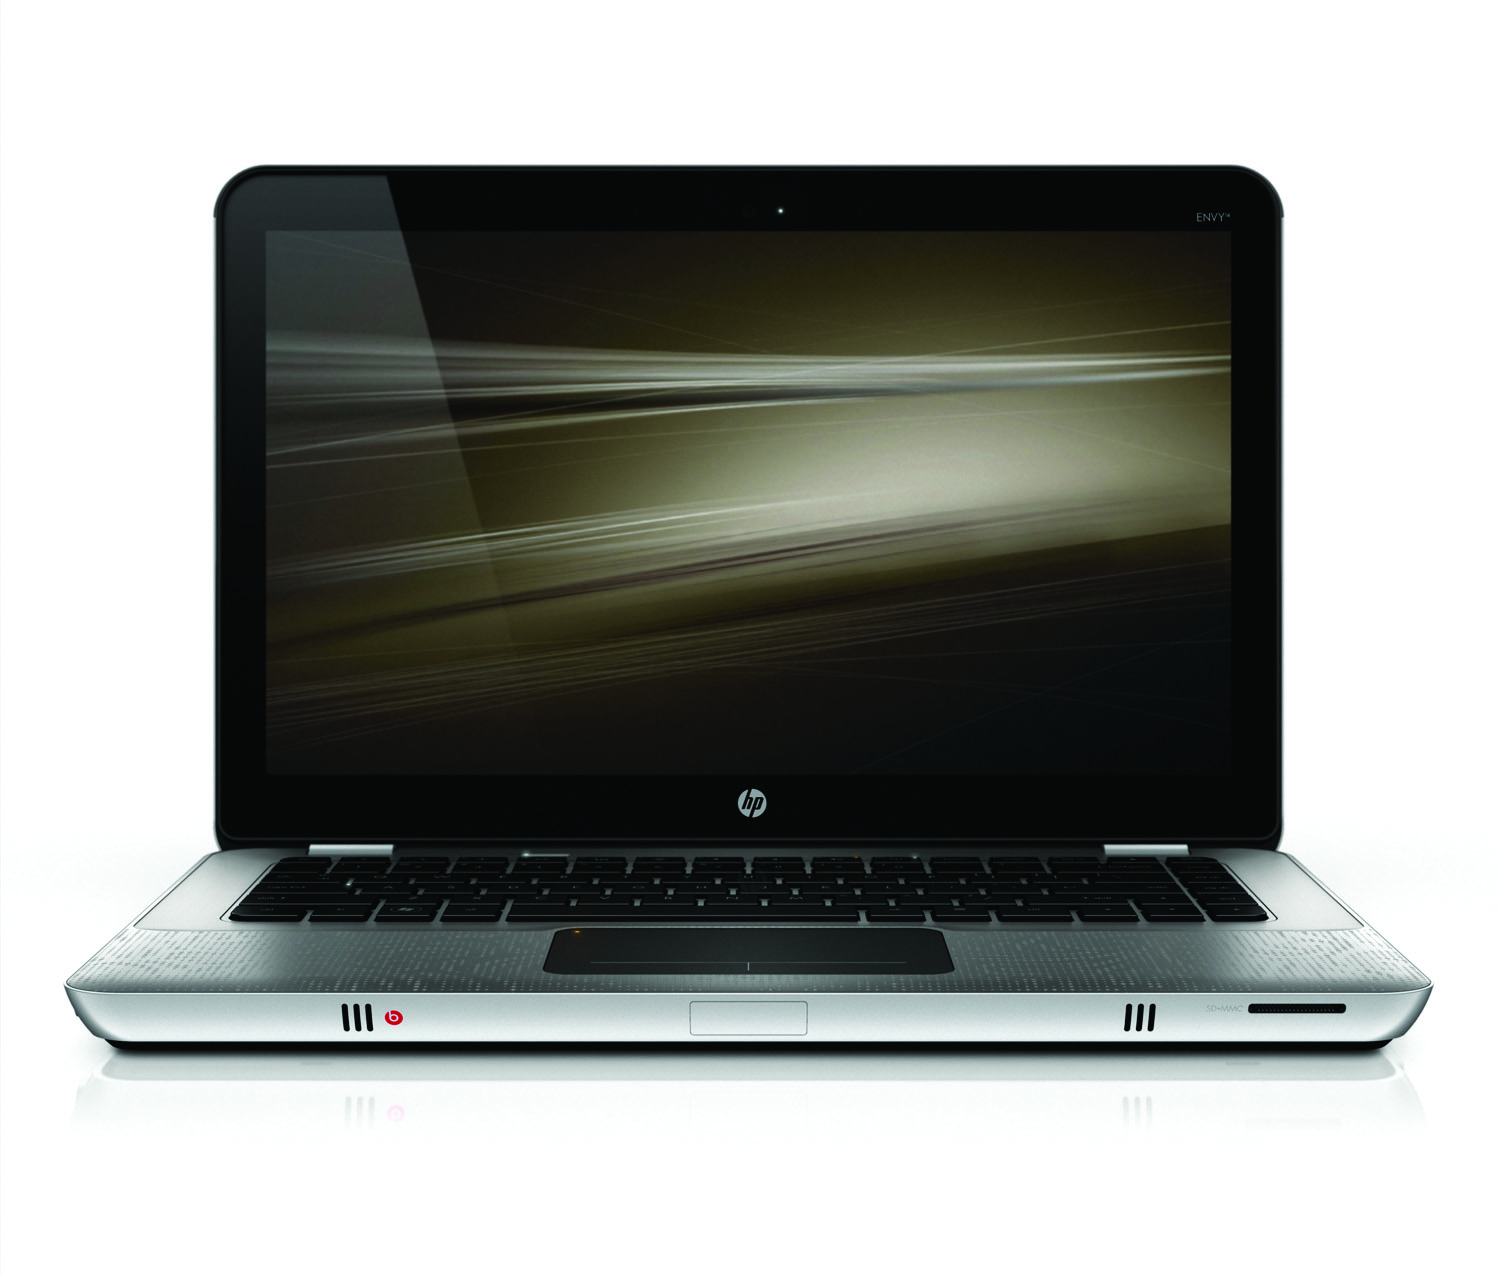 HP Envy 14, front open on white